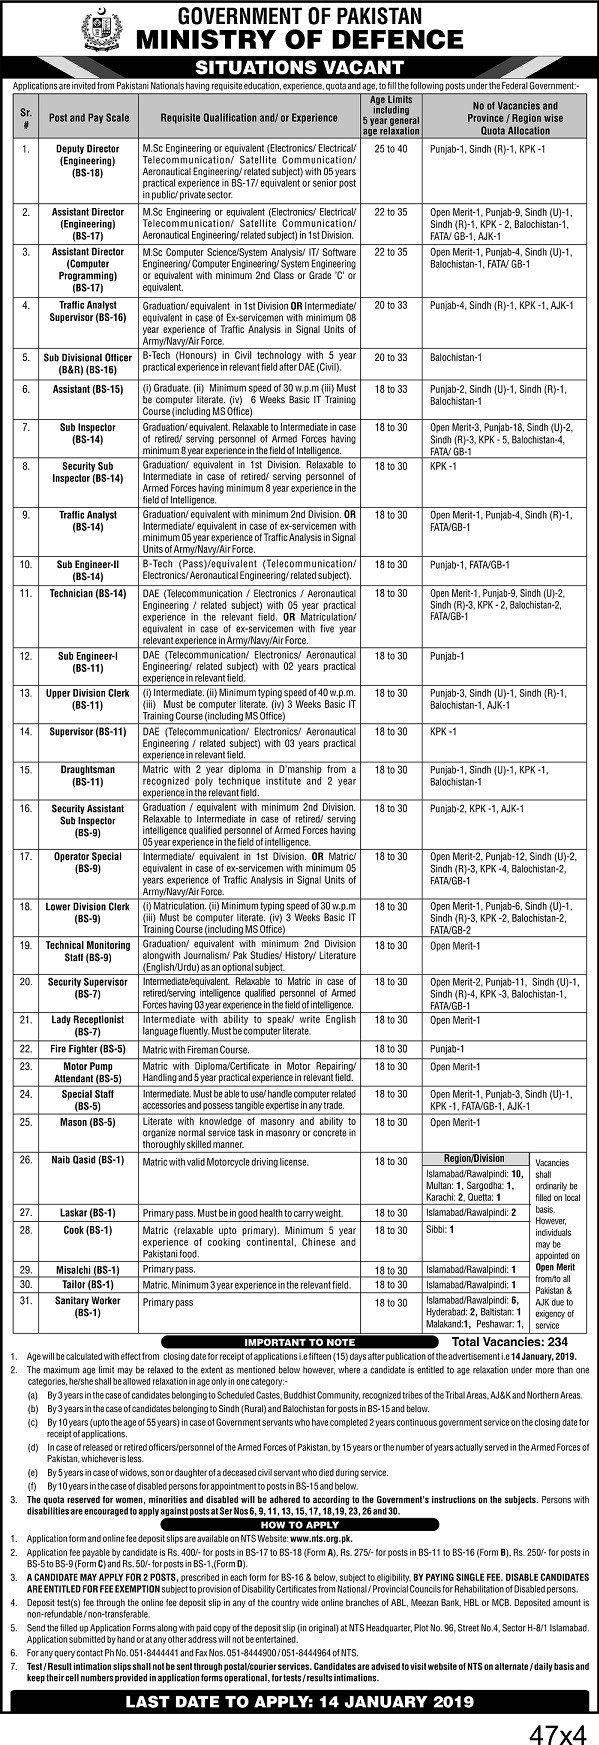 NTS Ministry of Defence Jobs Advertisement 2019 Dates, Application